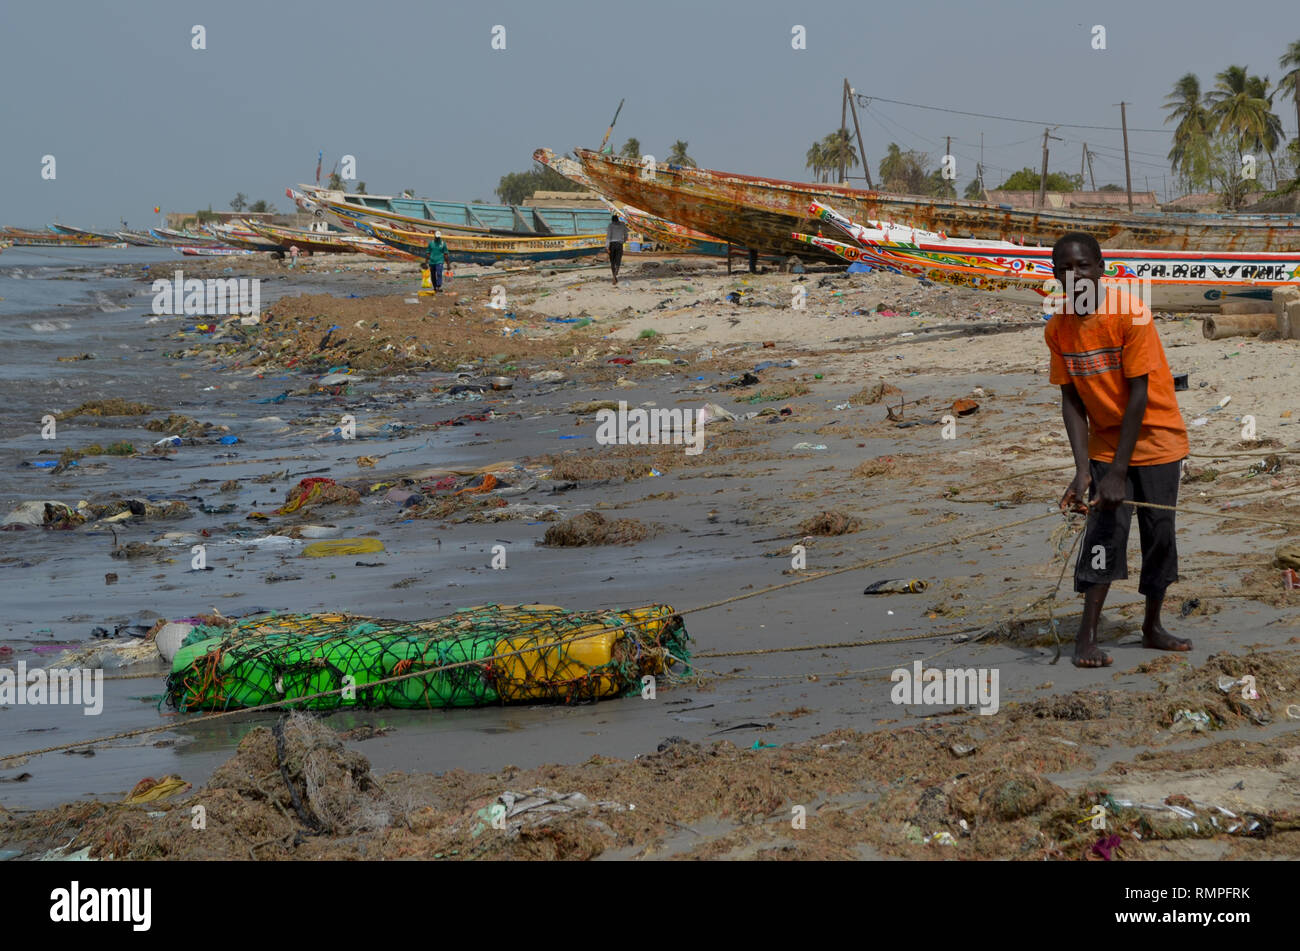 A beach full of plastic litter in the Petite Côte of Senegal, Western Africa - Stock Image